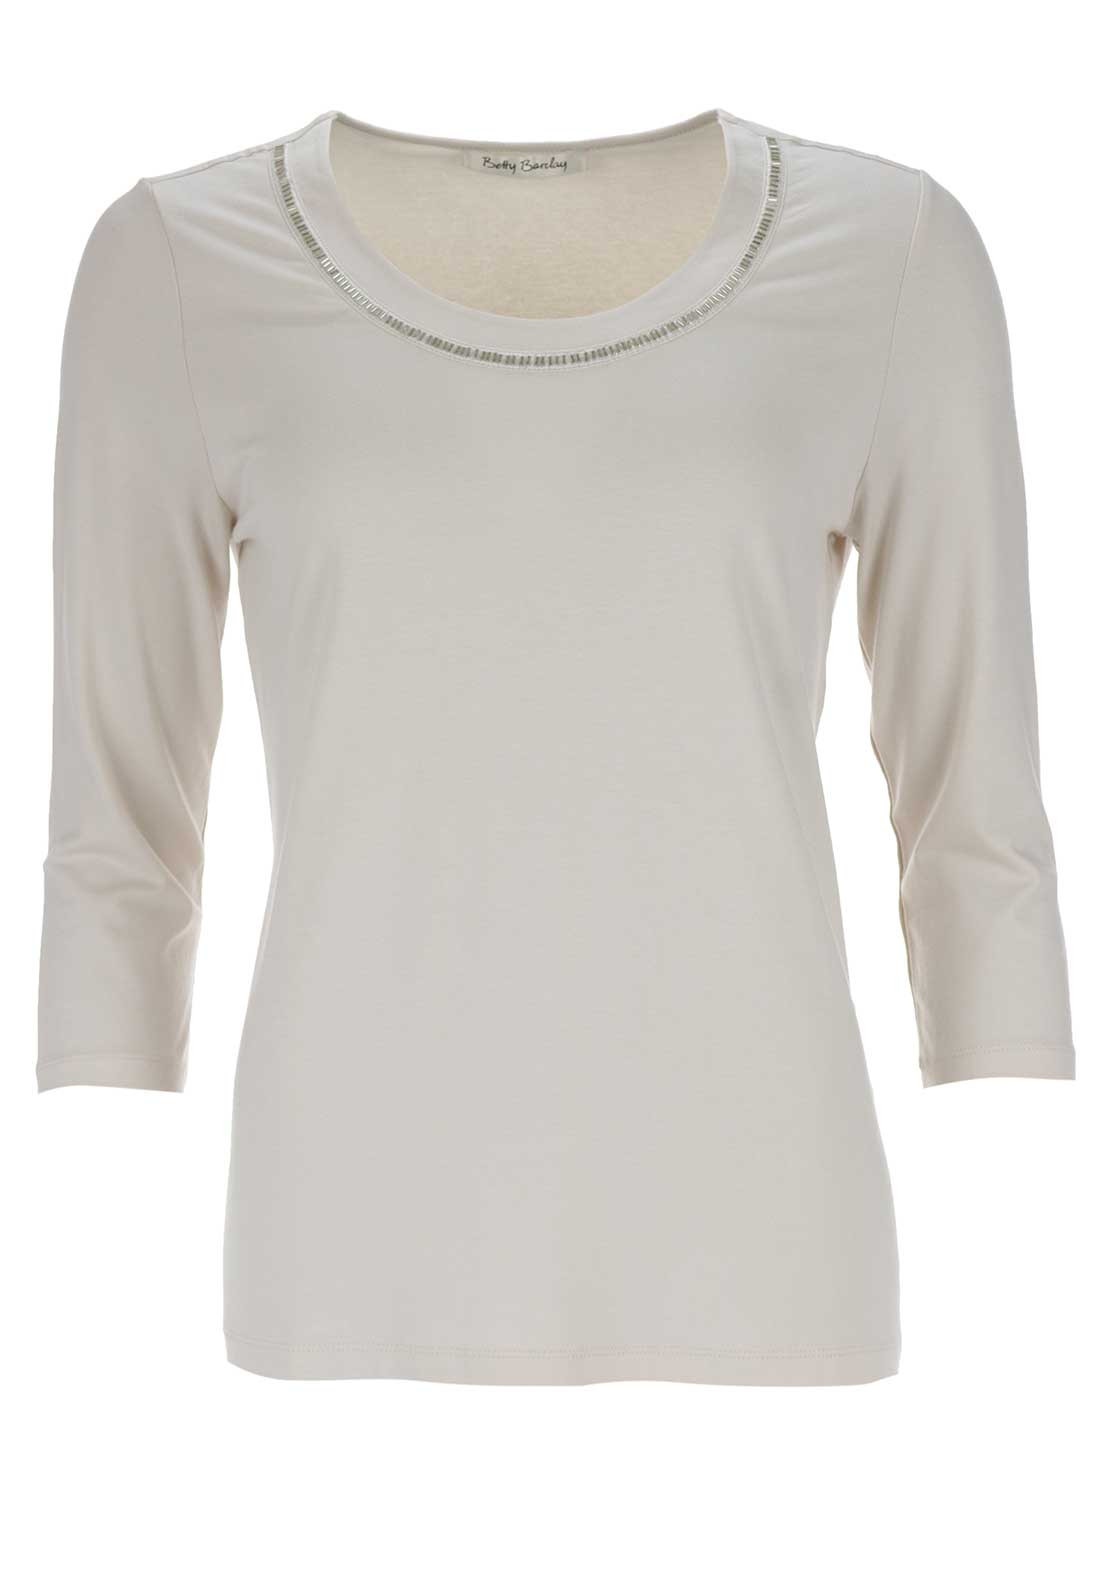 Betty Barclay Bead Trim Top, Nude